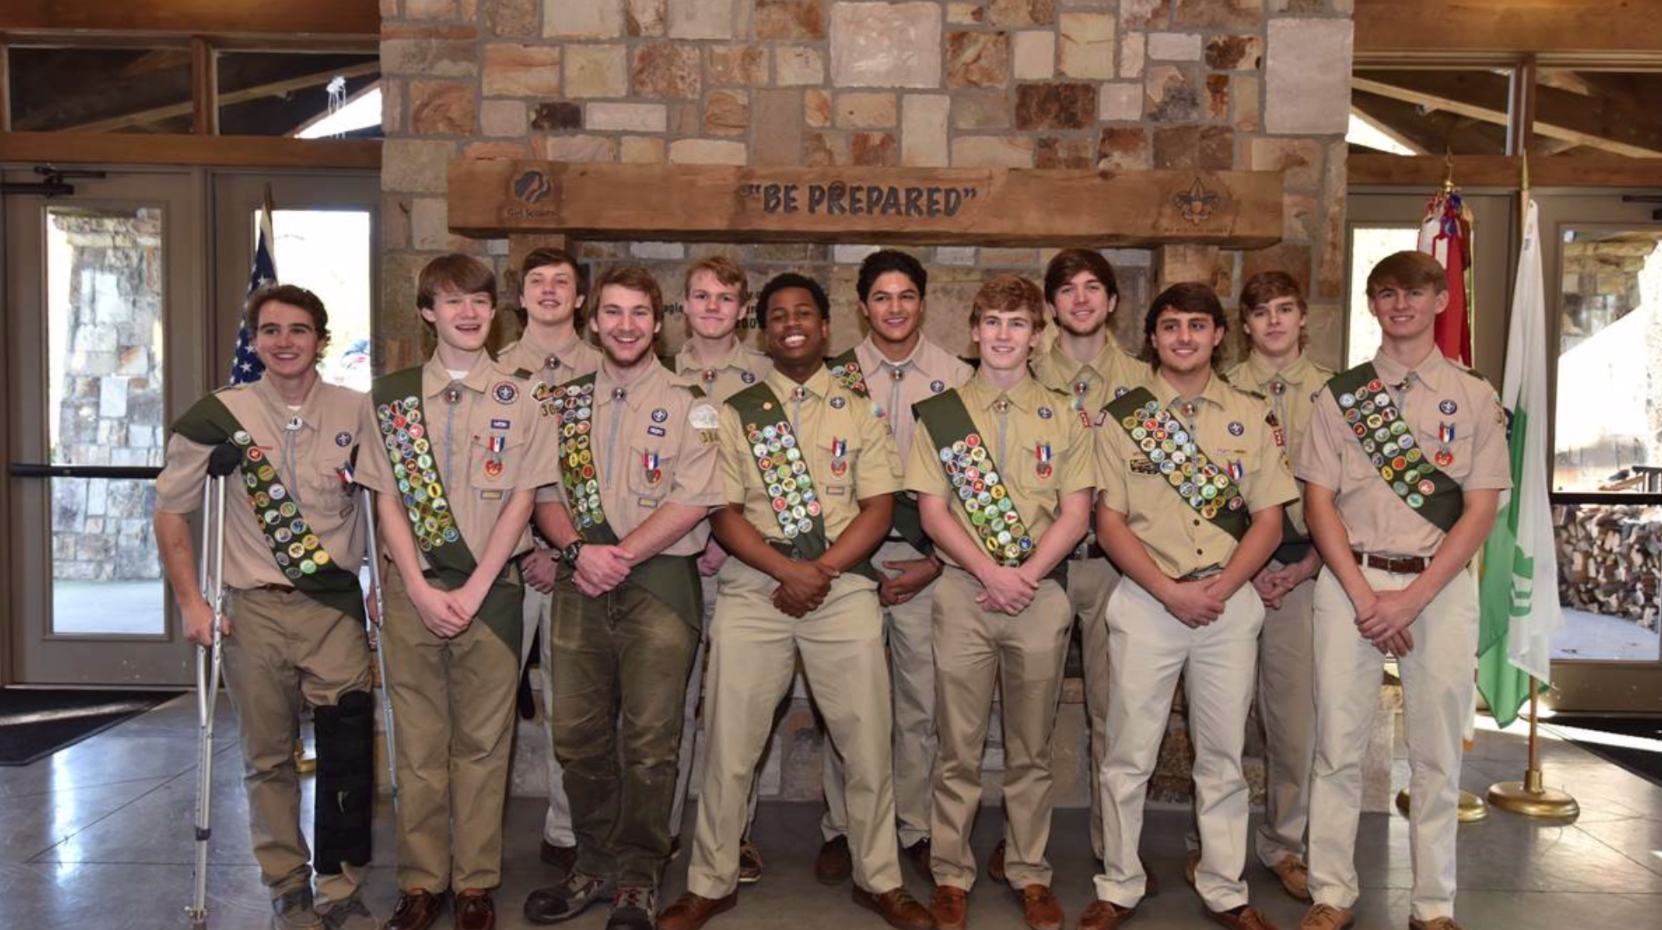 The Lovett Eagle Scouts